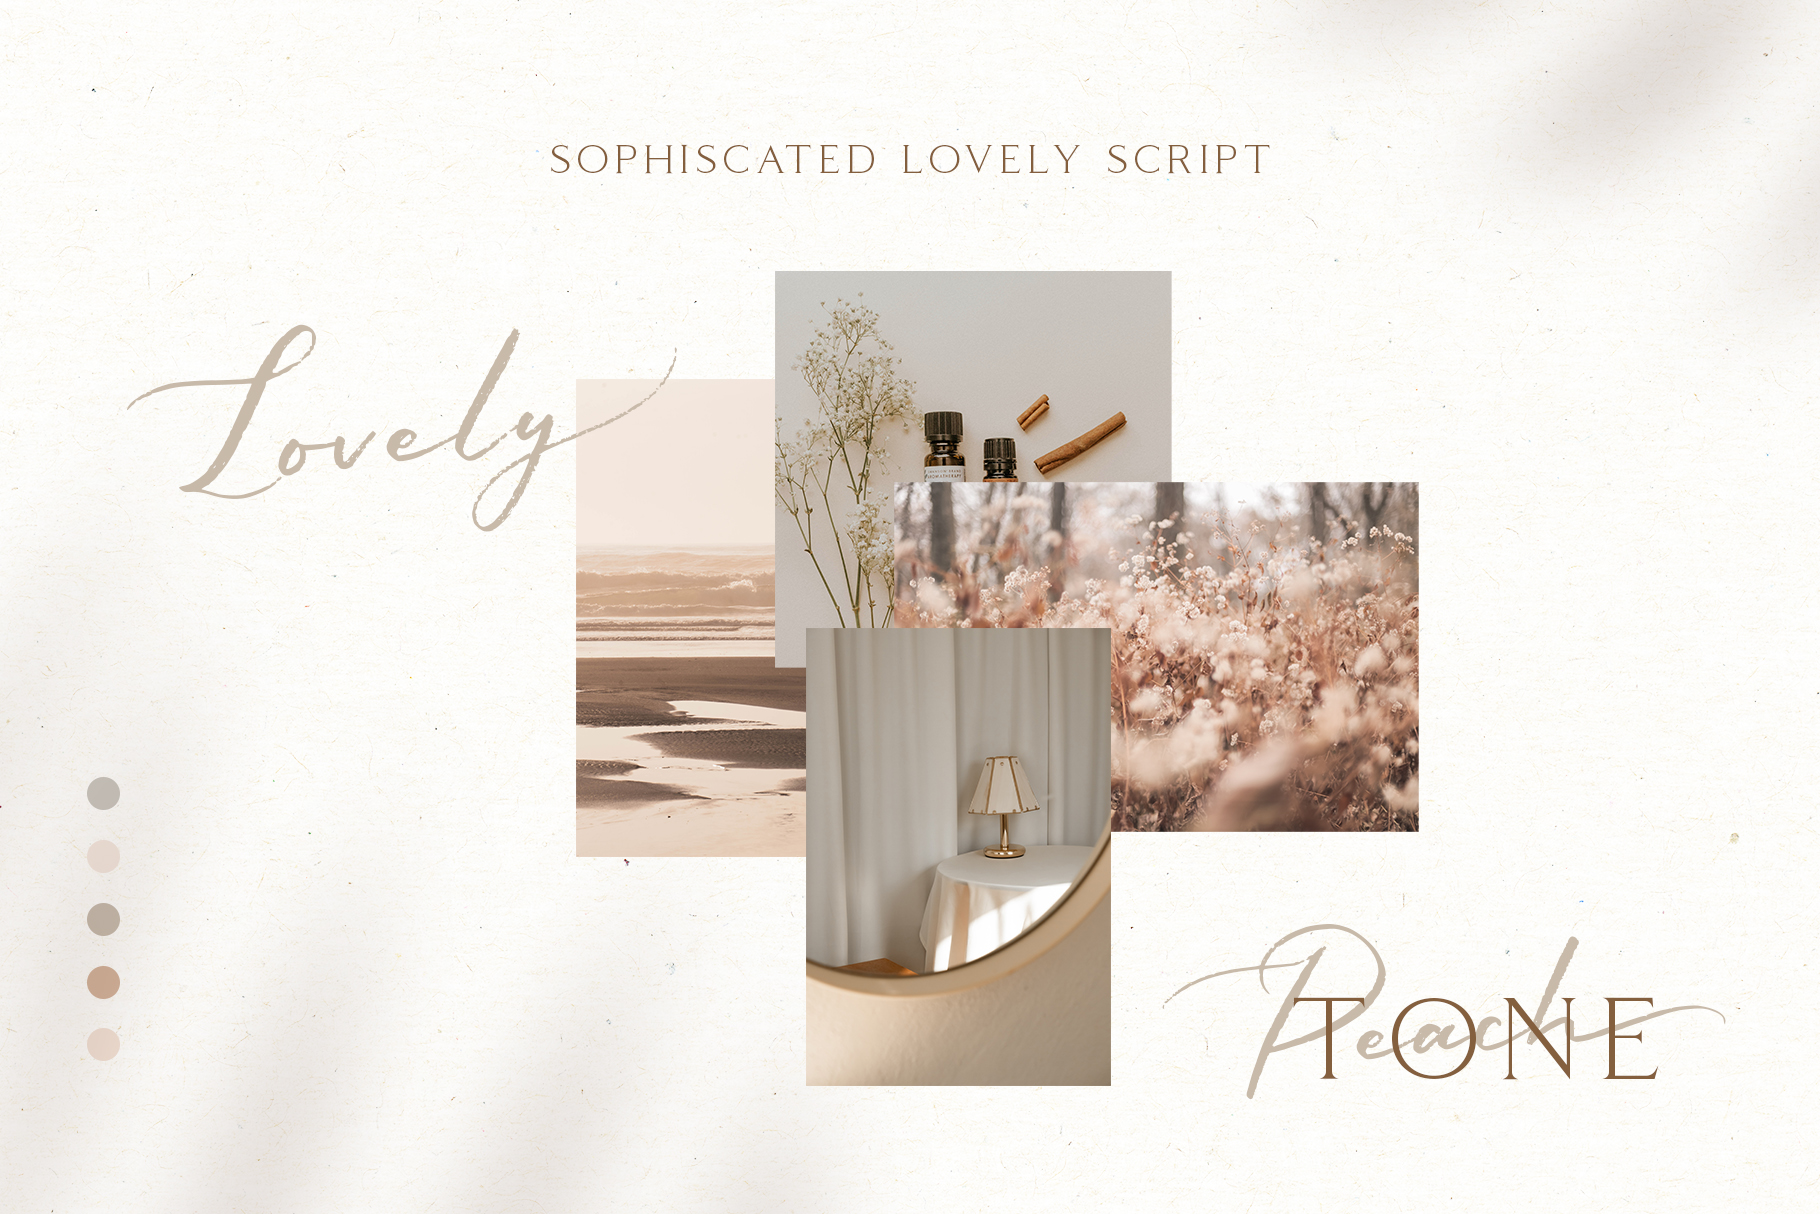 Sophiscated - A Lovely Script Font example image 9